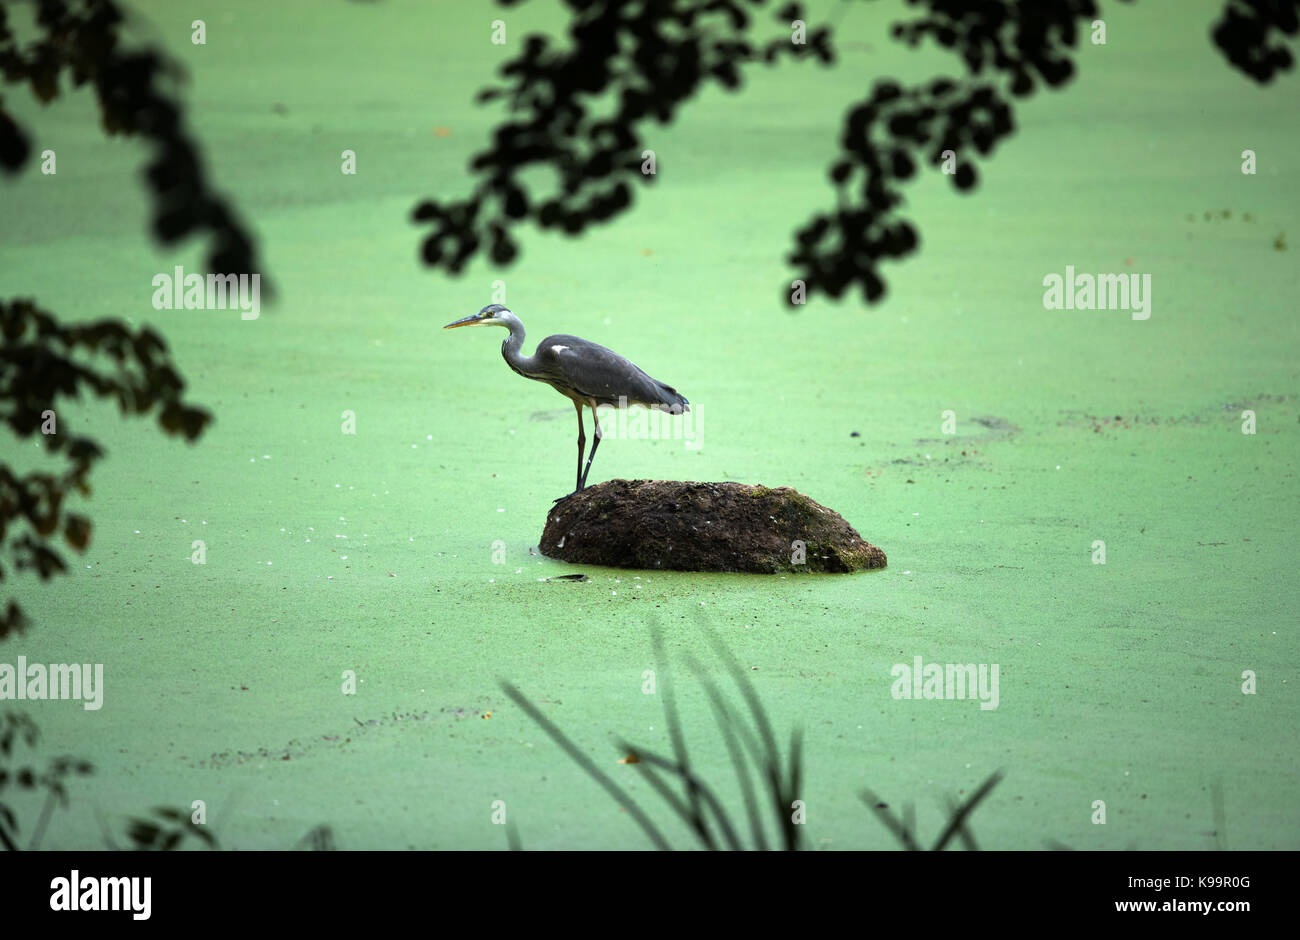 A heron stands on a small island and waits for food near Schwechow, Germany, 20 September 2017. Photo: Jens Büttner/dpa - Stock Image